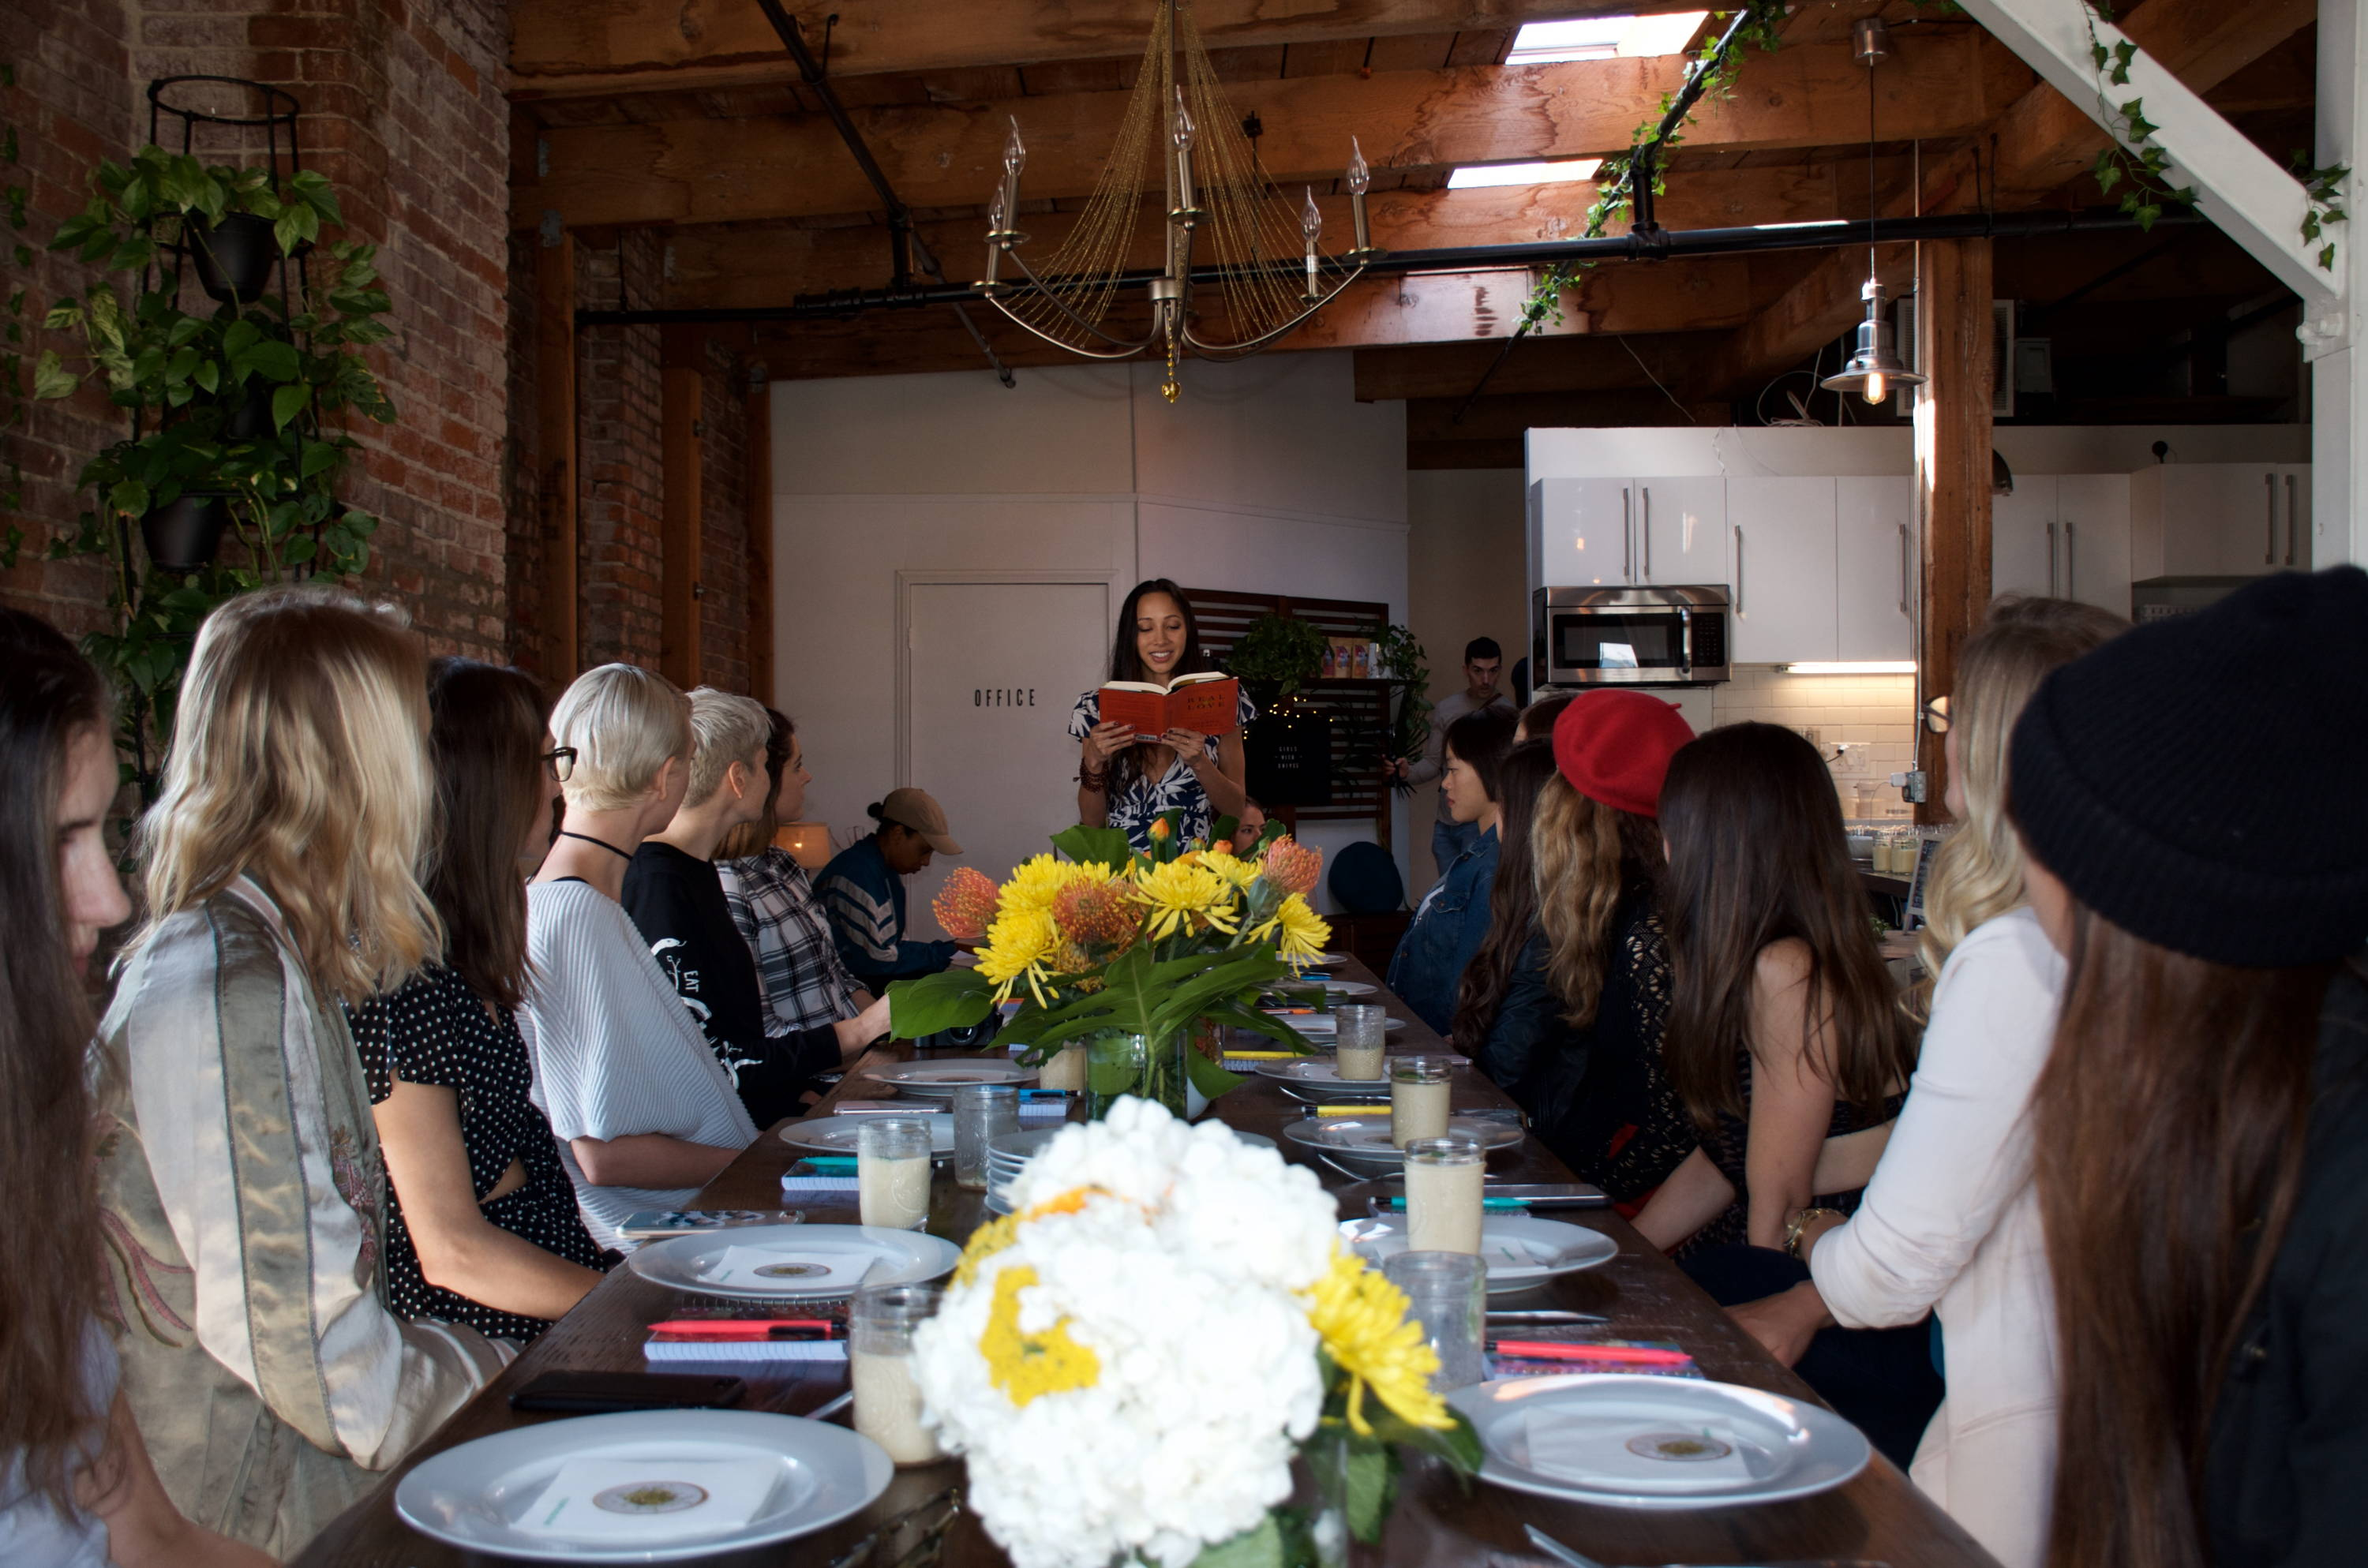 Celebrating female entrepreneurship, wellness, and food